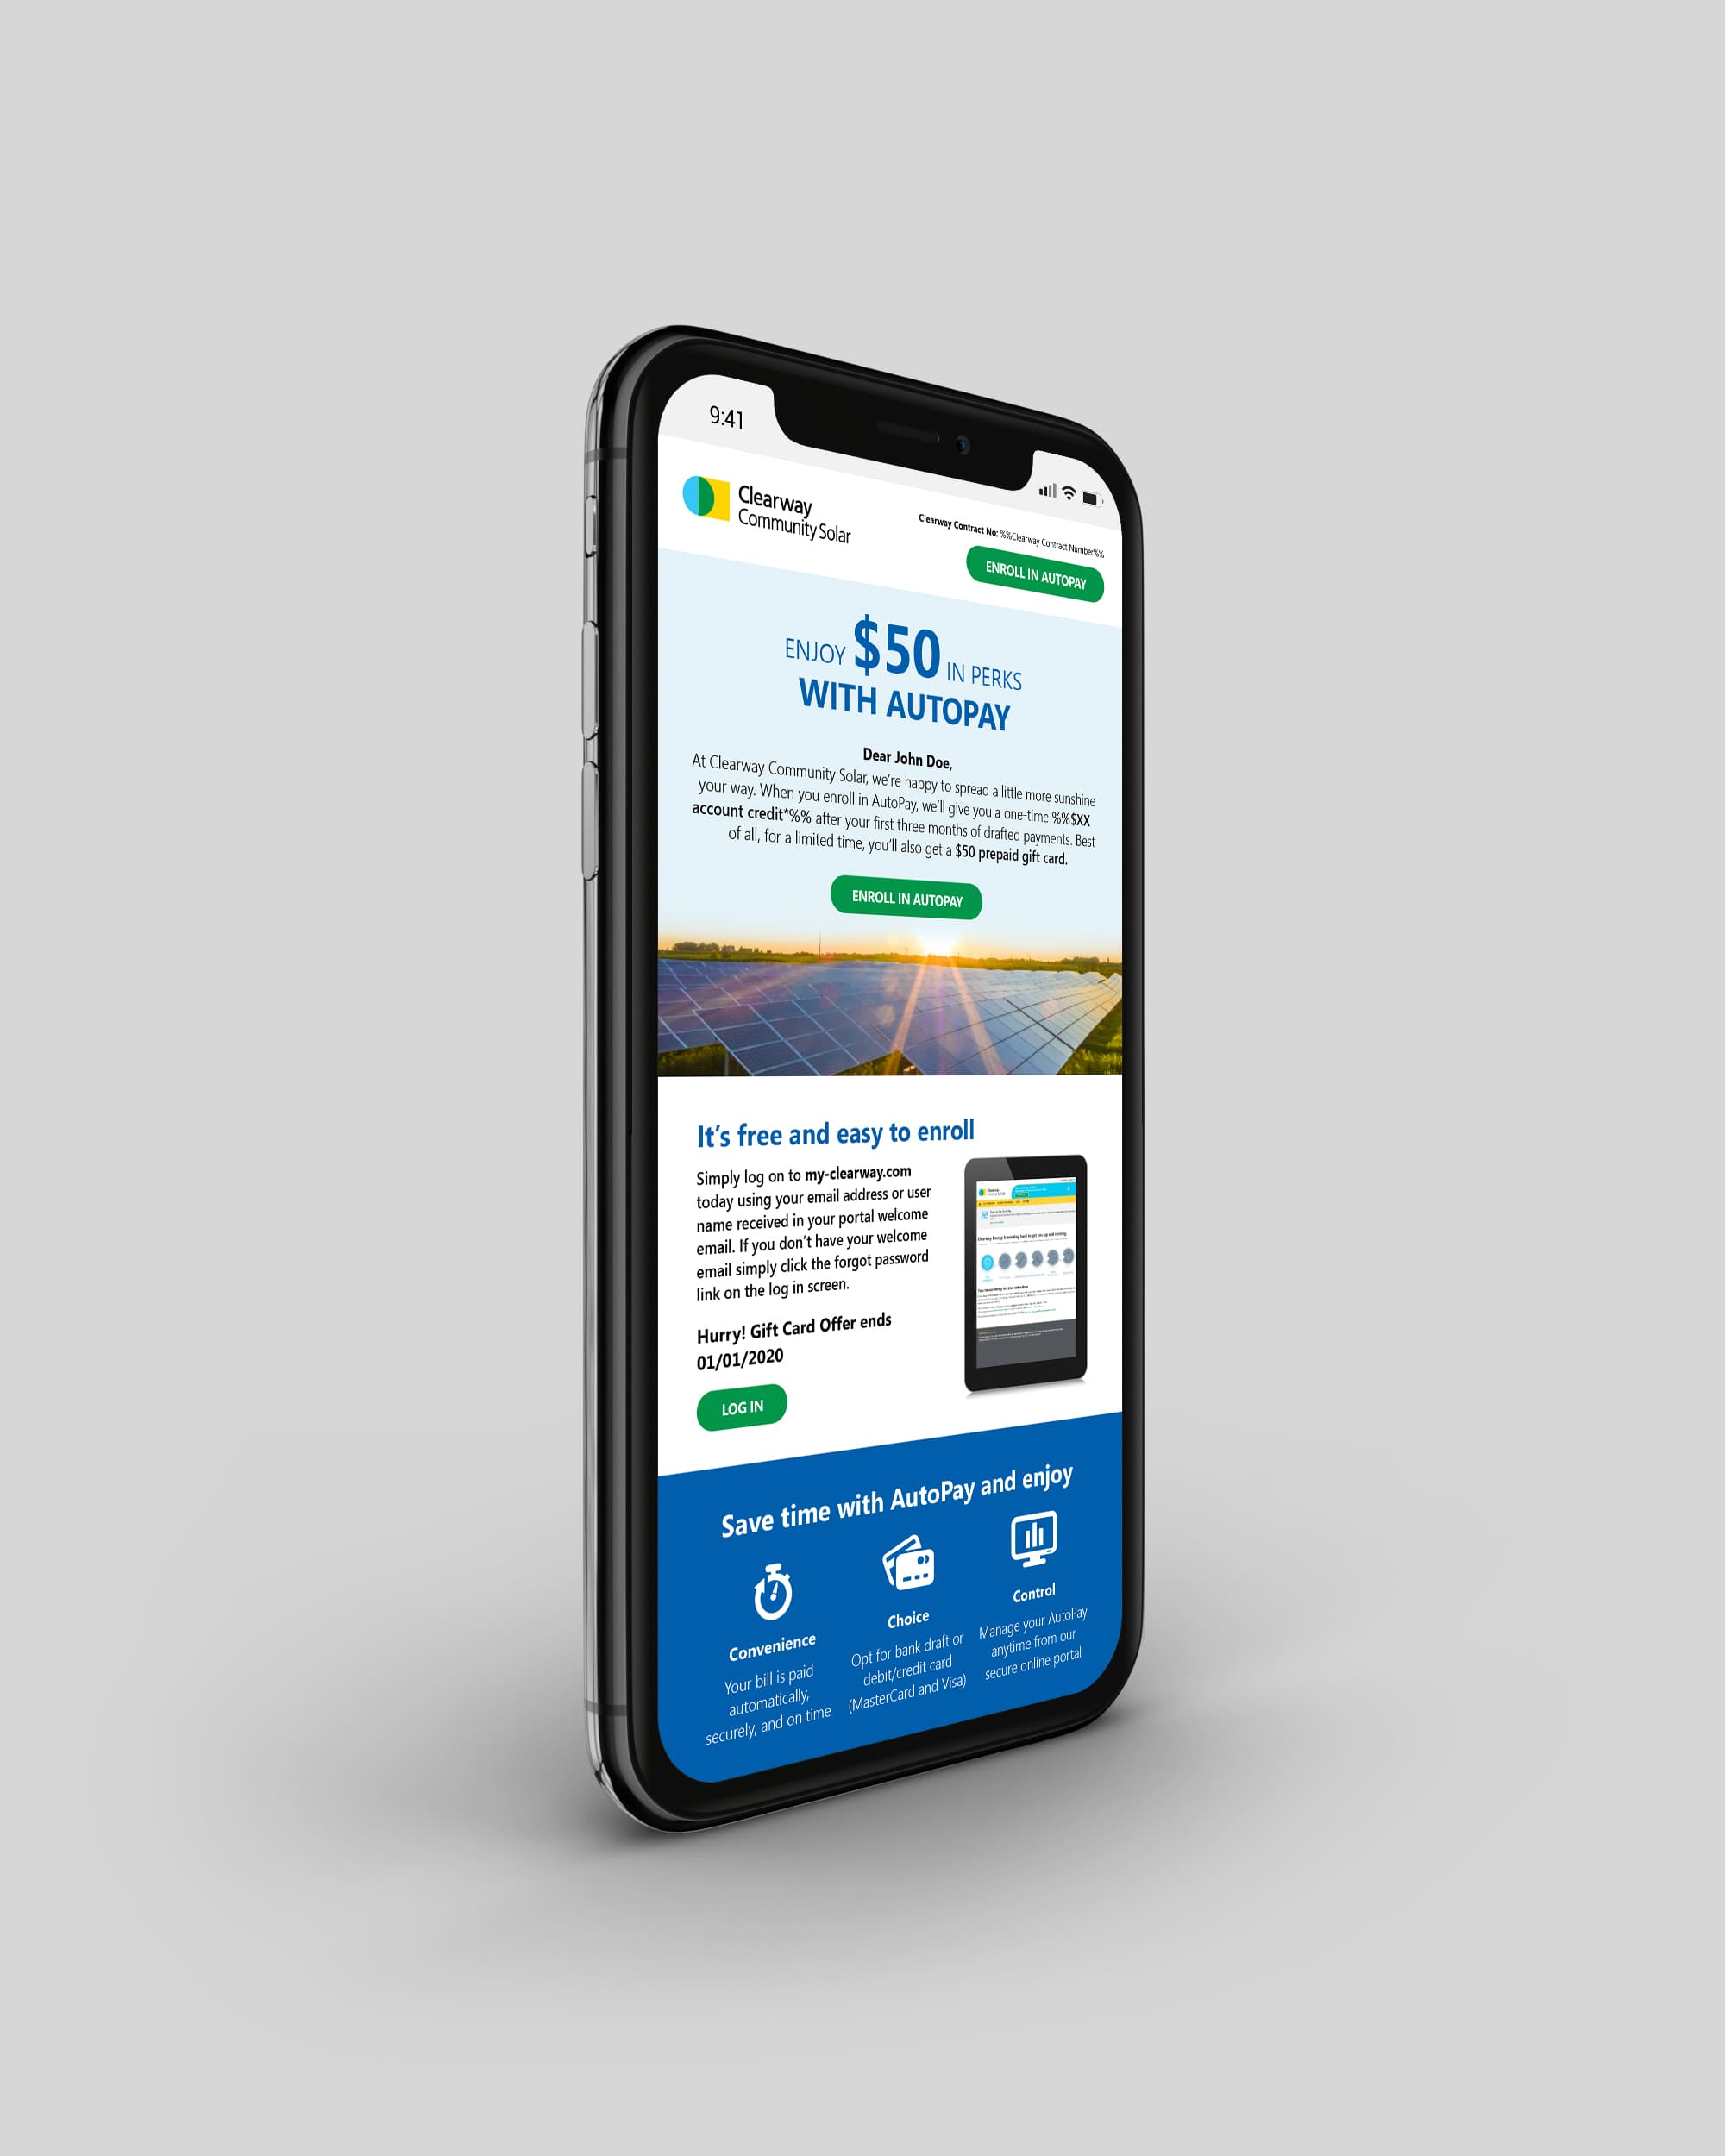 Clearway-community-solar-email-design-3